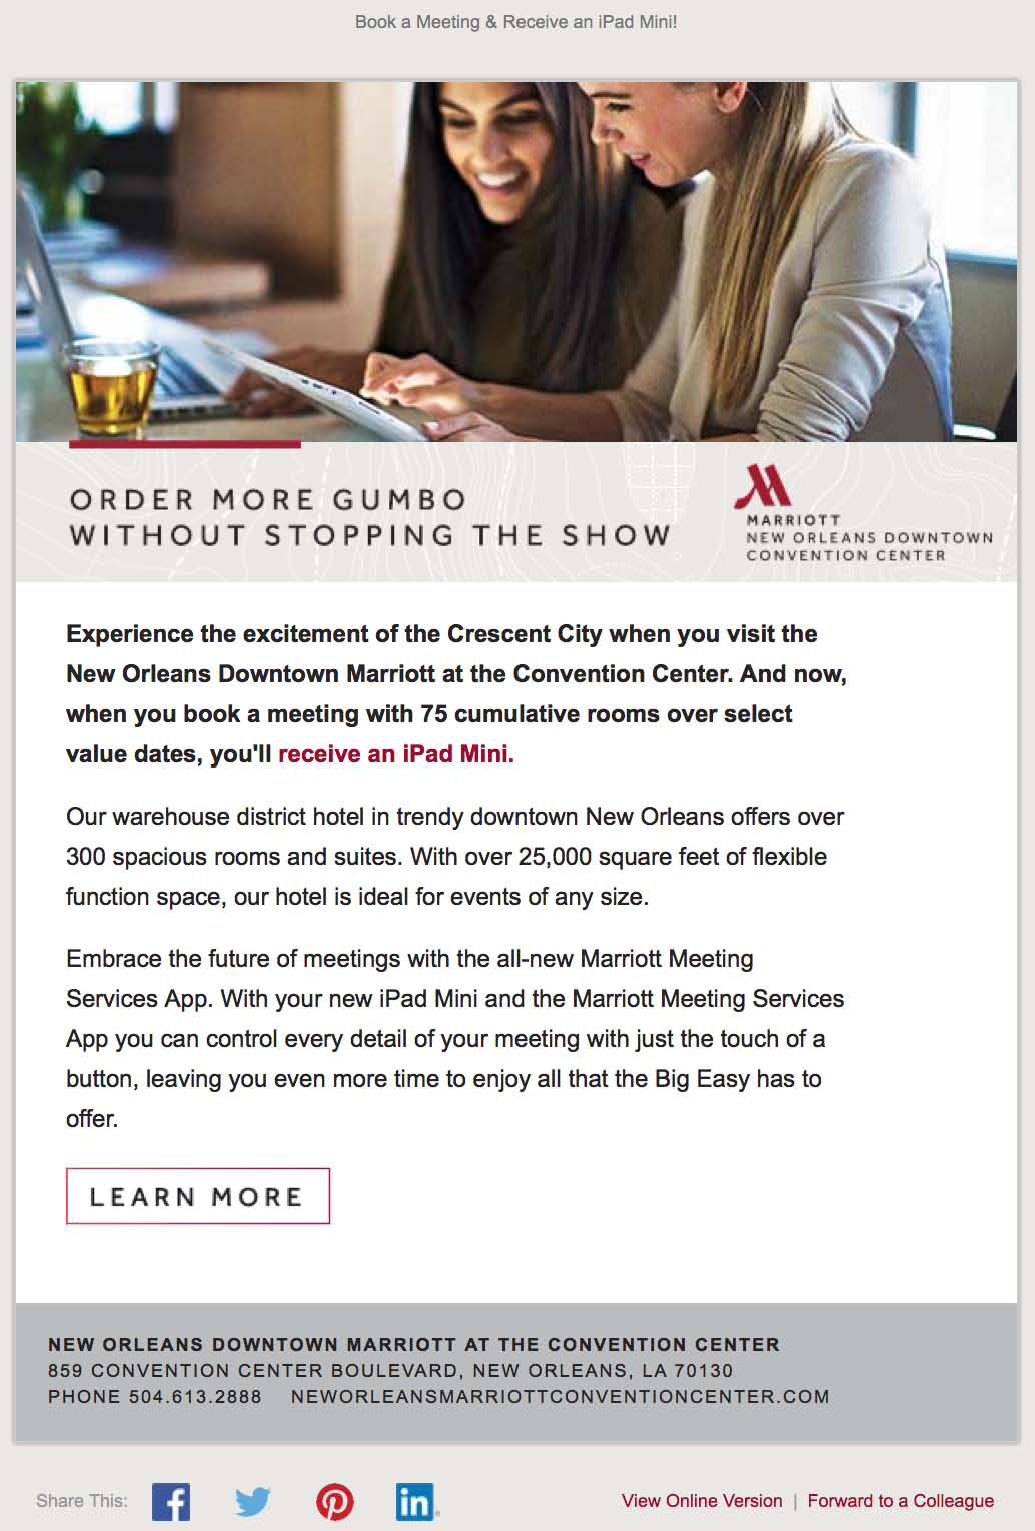 New Orleans Marriott e-mail ad